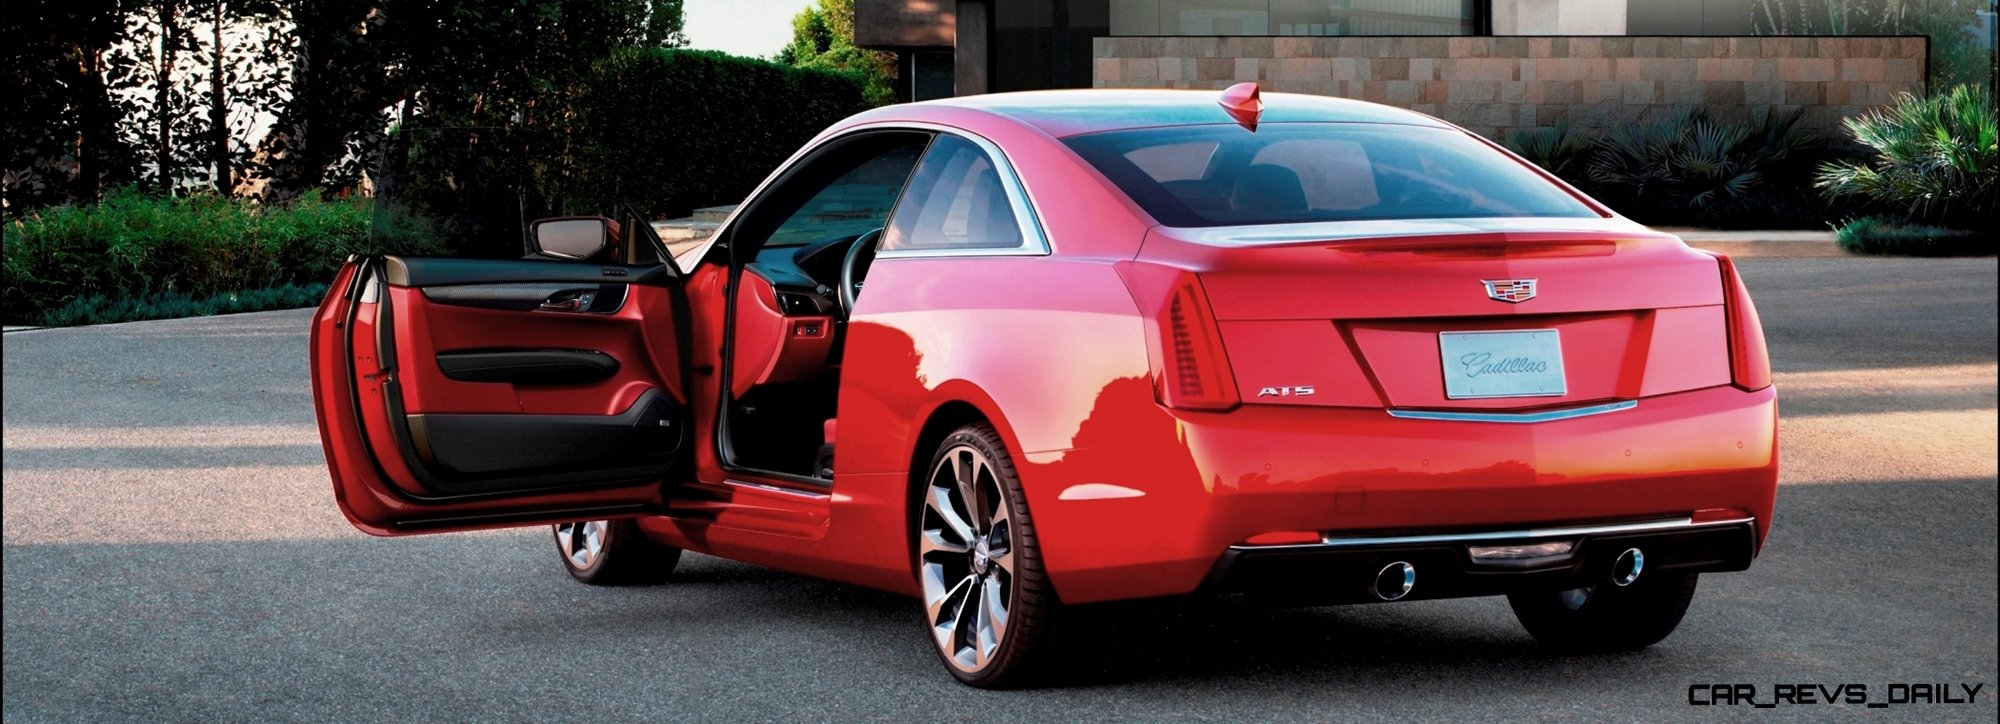 2015 Cadillac ATS Coupe Includes Overboost and 5.6s 0-60 Sprint.. As